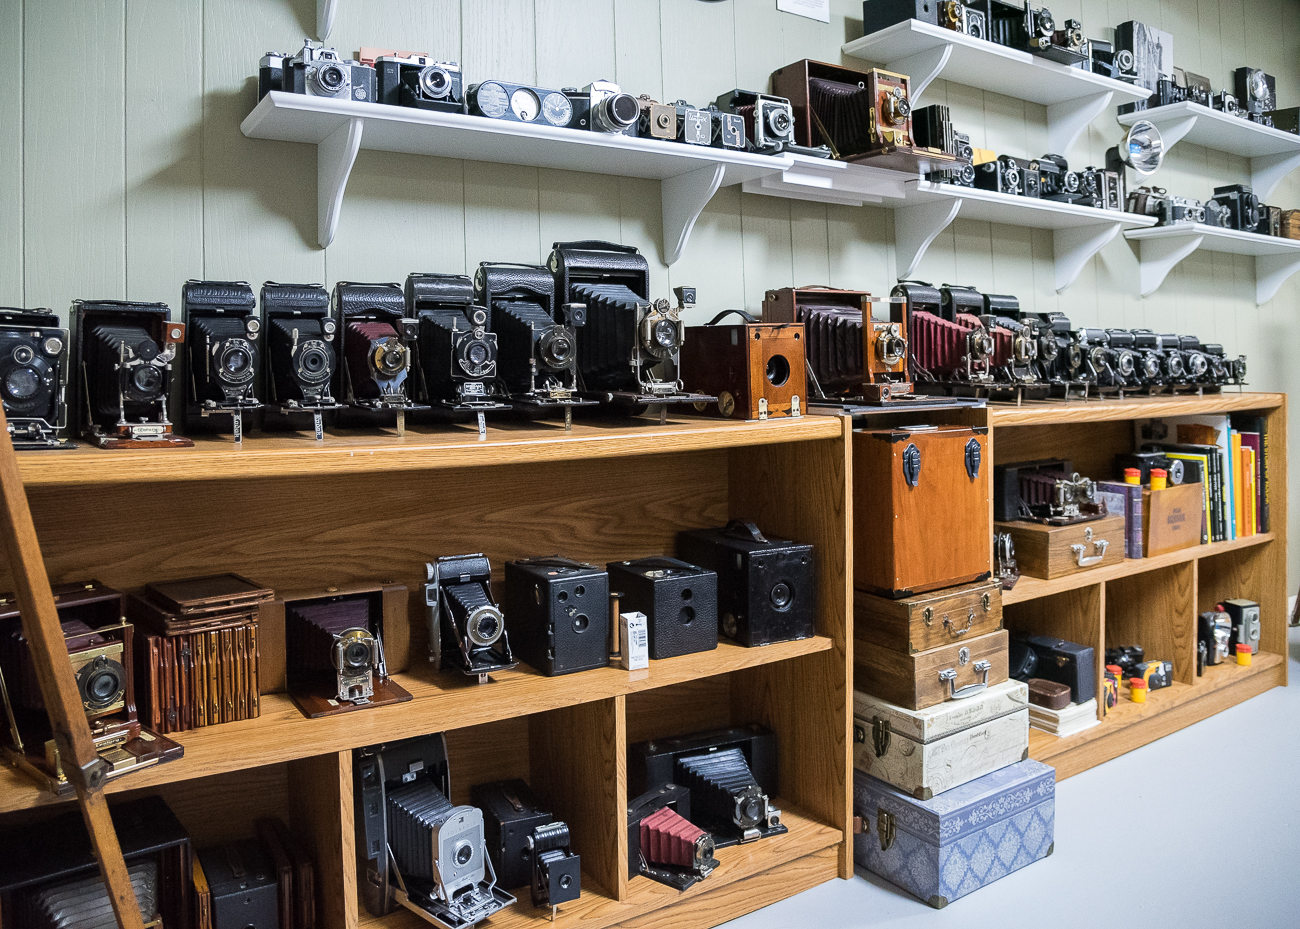 Around 20% of the total collection is still operable. Tim modifies some of the old cameras to use modern day film just so he can take a few photos often using 100-year-old technology. His efforts to restore the cameras has become a hobby in and of itself. / Image: Phil Armstrong, Cincinnati Refined // Published: 2.25.19